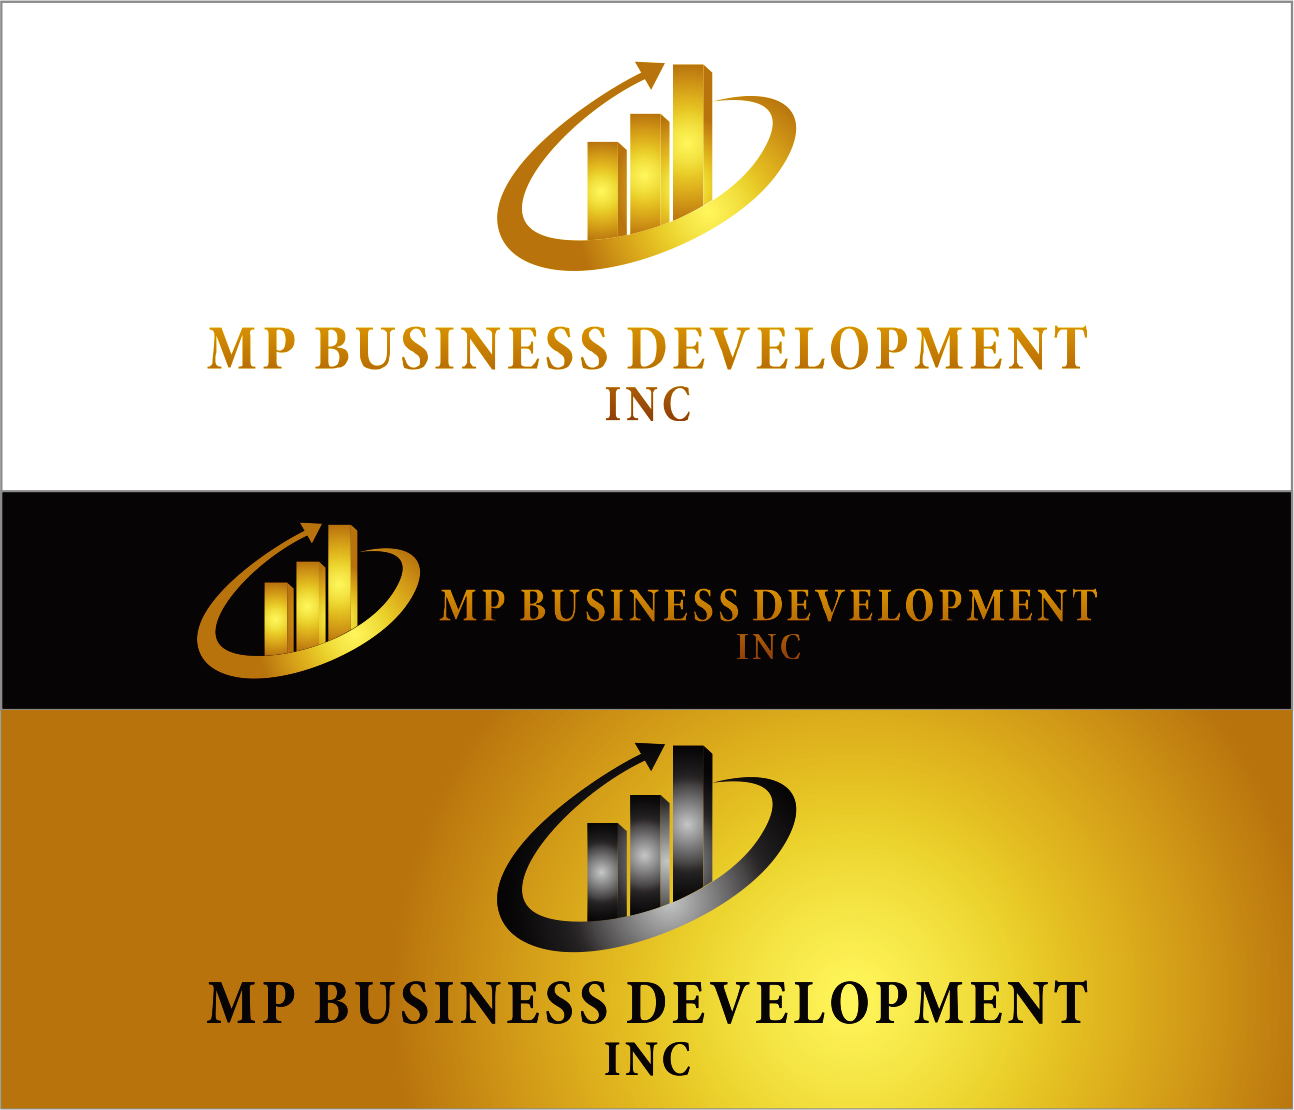 Logo Design by Armada Jamaluddin - Entry No. 234 in the Logo Design Contest MP Business Development Inc. Logo Design.